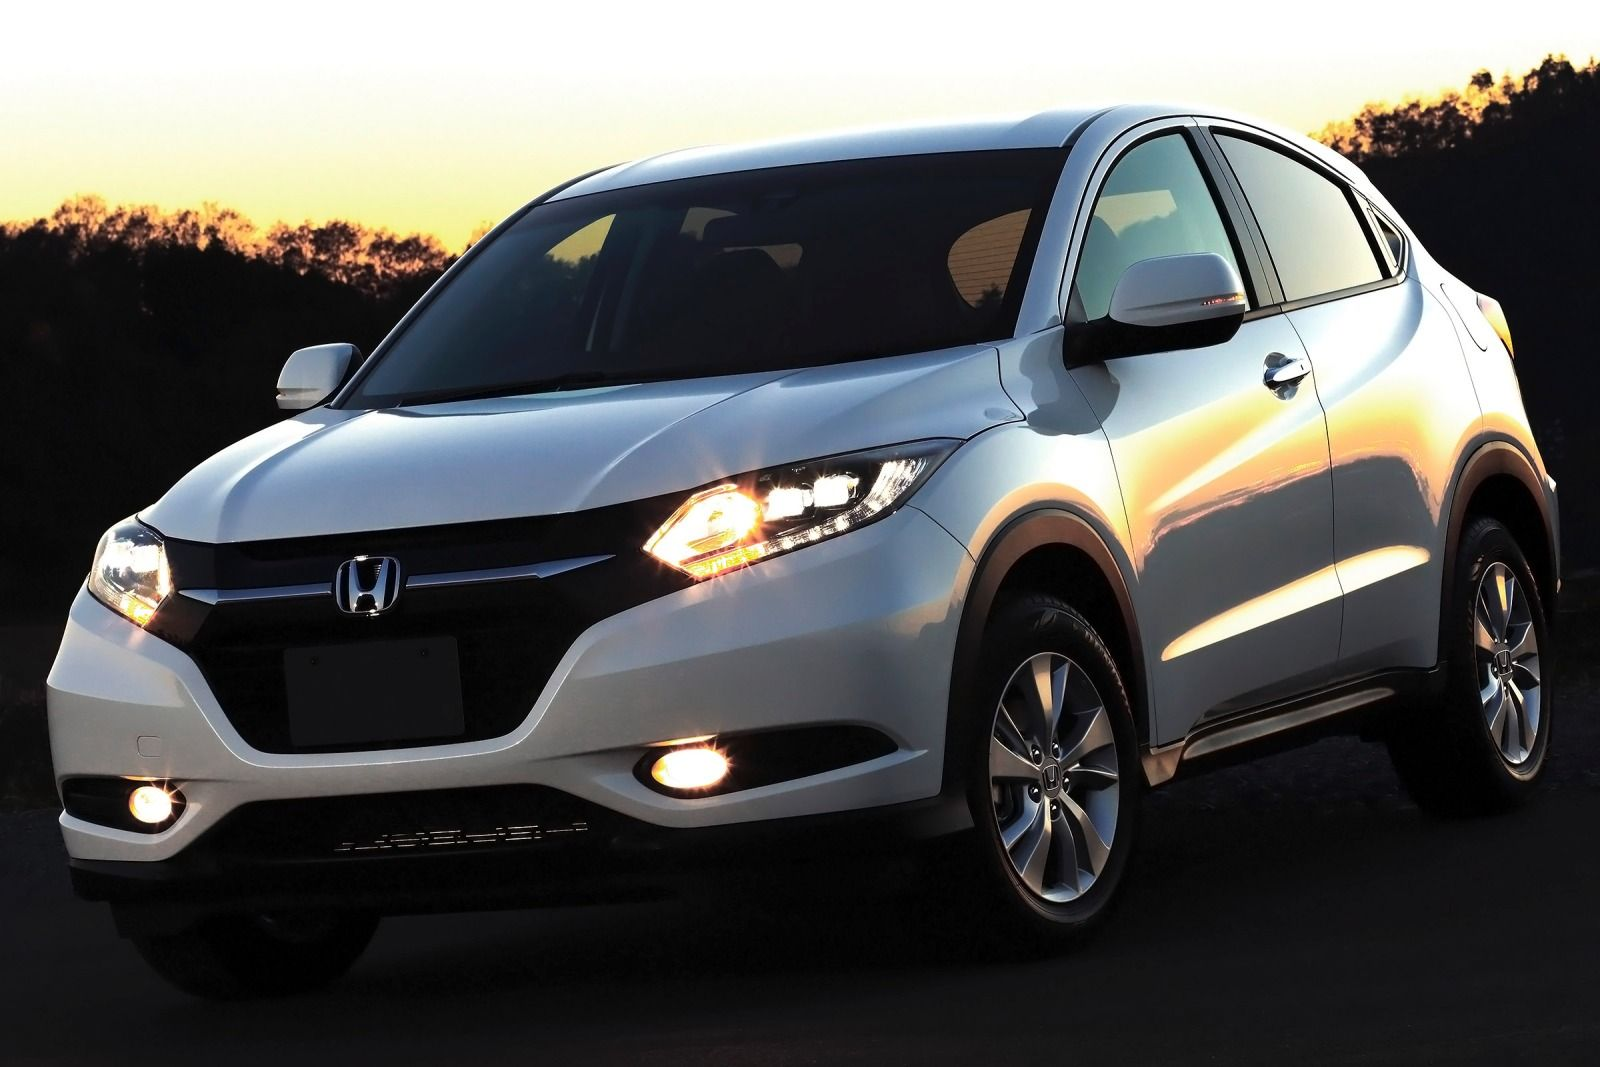 Search and compare used 2016 Honda HRV cars and autos for